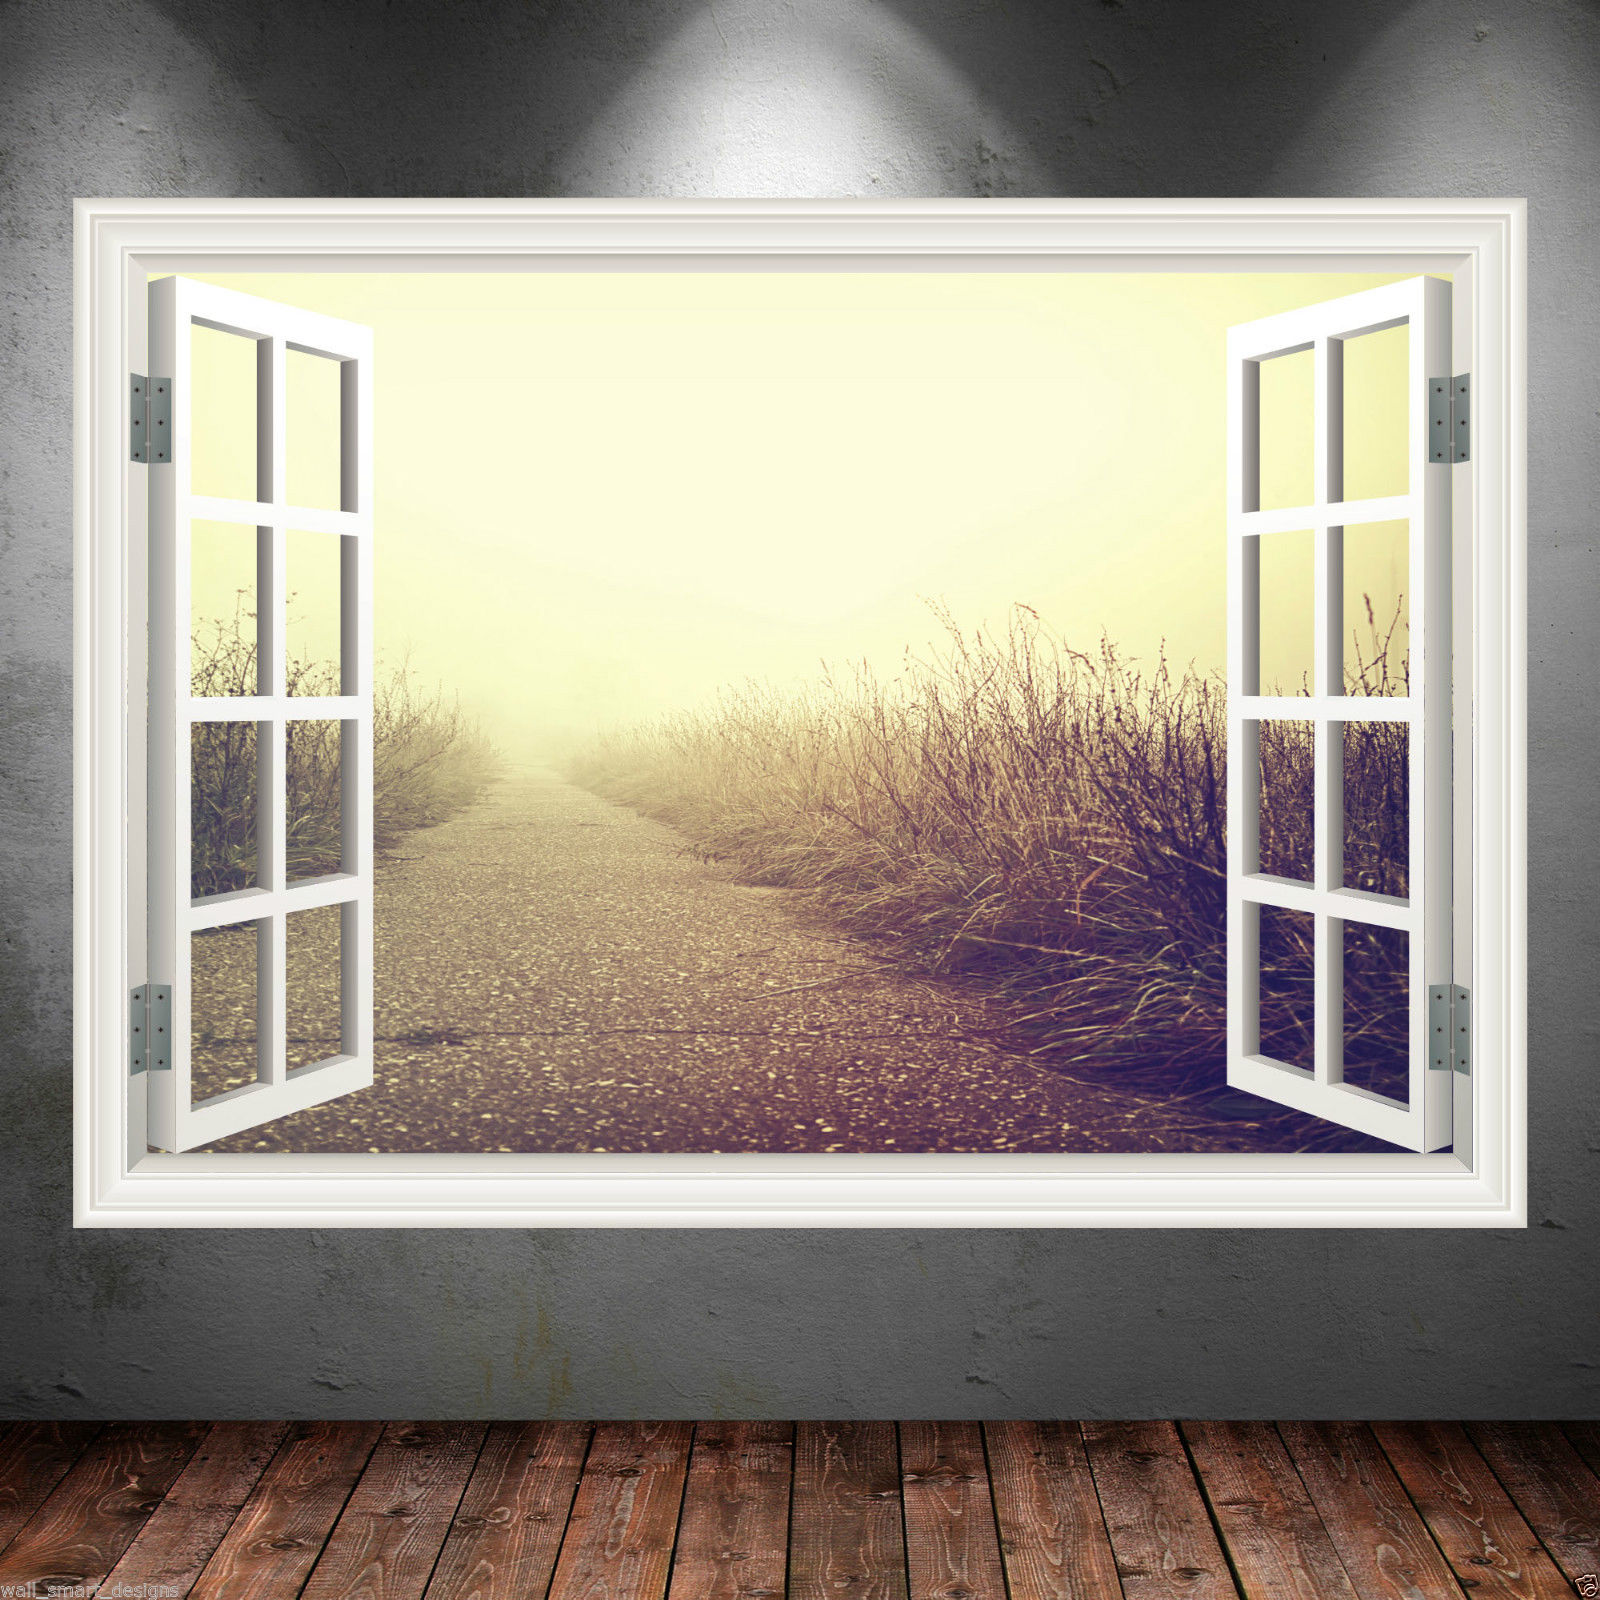 pathway window frame full colour wall art sticker decal transfer mural graphic